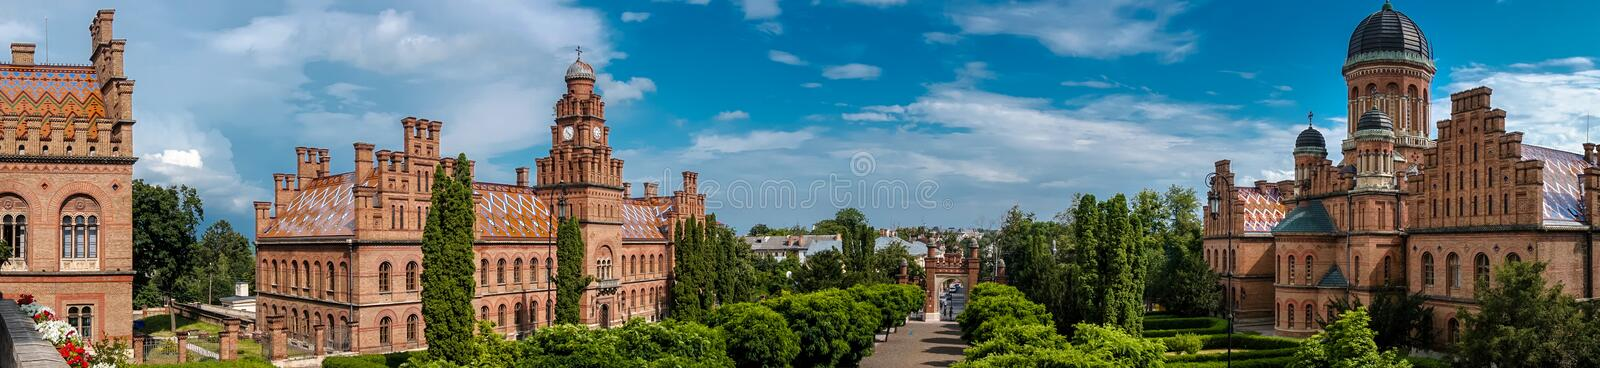 Université Ukraine de Chernivtsi photo stock